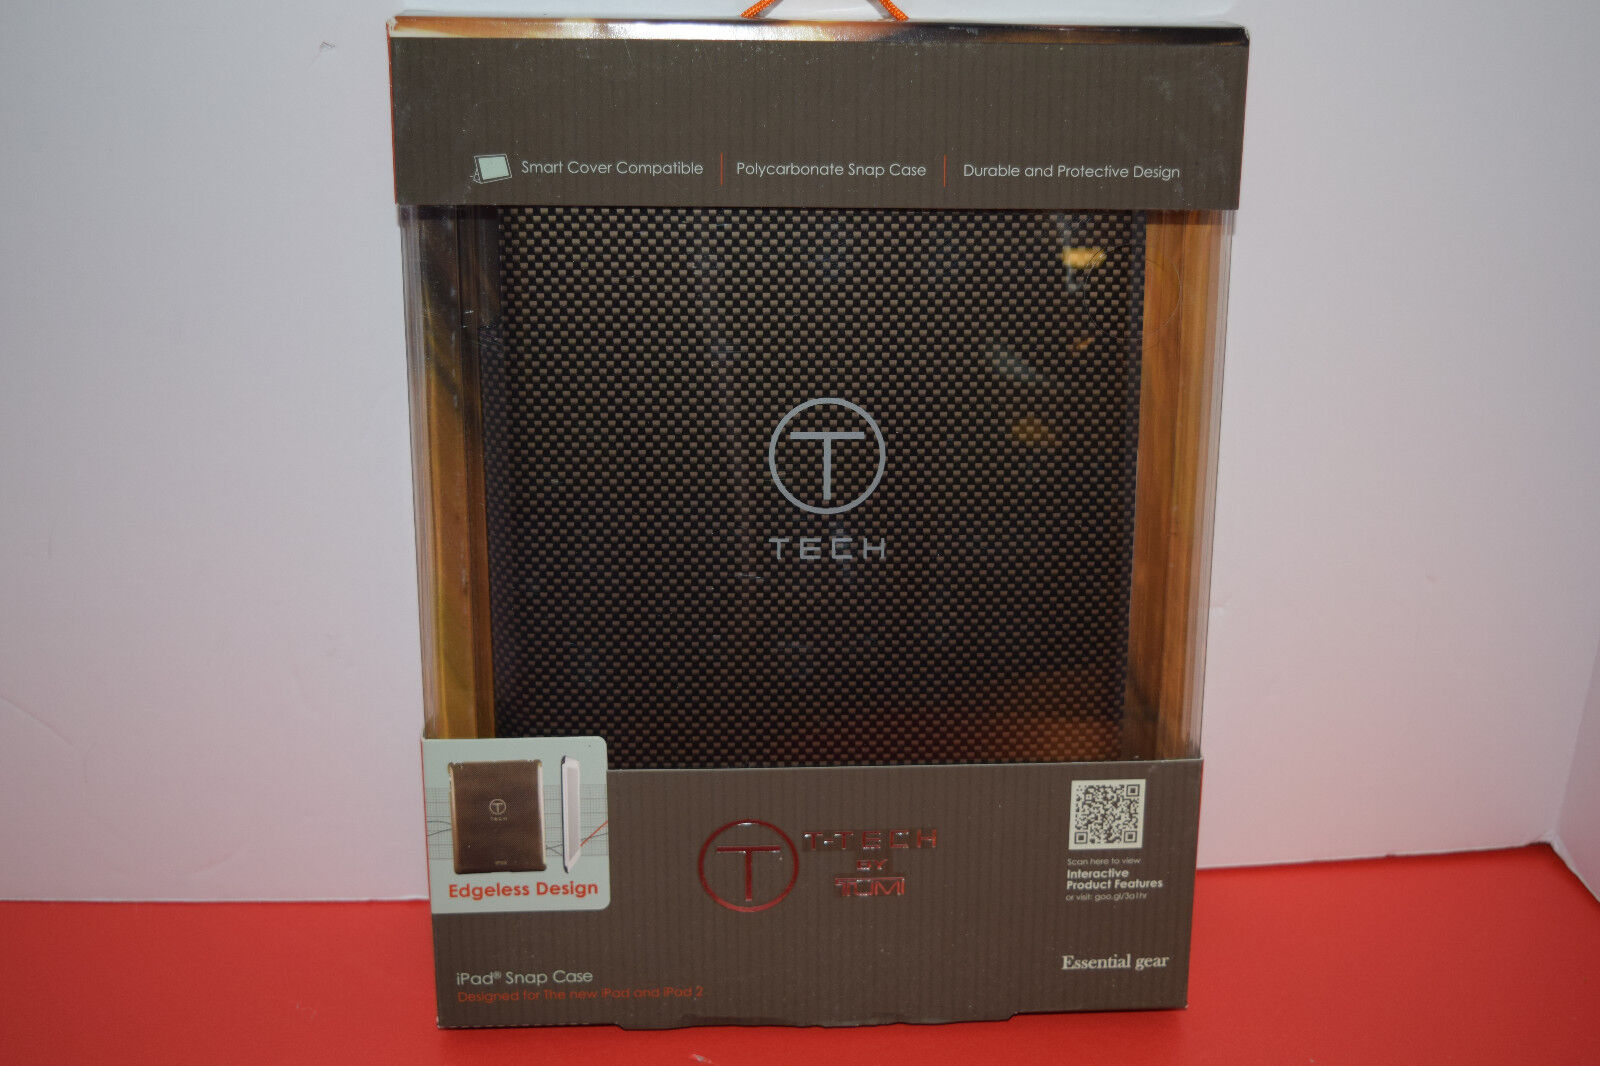 Tumi T-tech Polycarbonate Snap Case For Ipad1 Or Ipad2 Carbon Fiber Pattern New